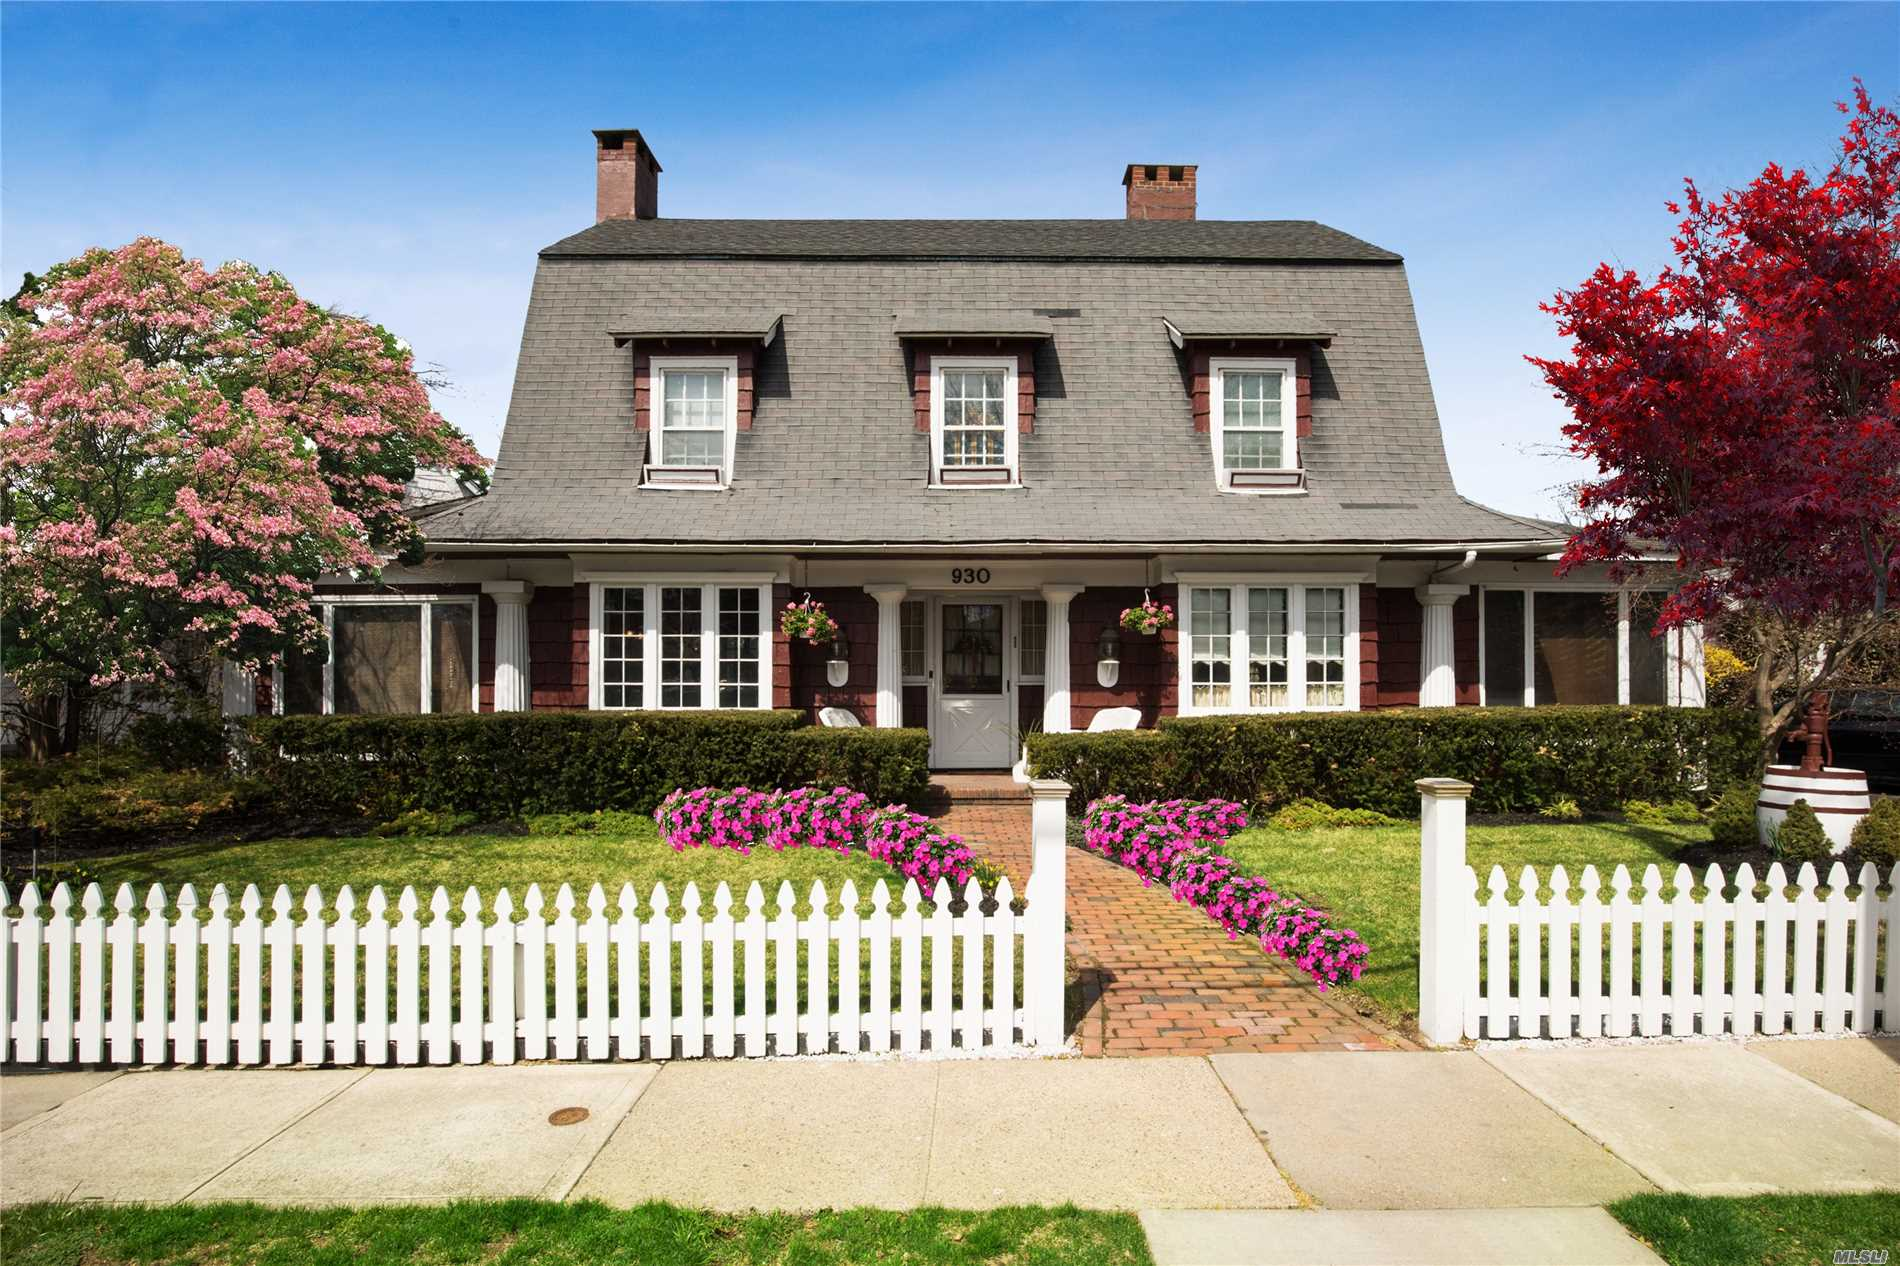 Old Woodmere Center Hall Colonial with exceptional detailed quality woodwork! Elegant 5 bedrooms, 3.5 bath, 4 fireplaces, extra -large eat in kitchen w/Mexican tile floors, Indoor commercial grill and granite countertops. Large formal dining room and formal living room , 2 dens, master suite with updated ensuite and fireplace. Newsday's Cover of Holiday Issue. Walk to all!